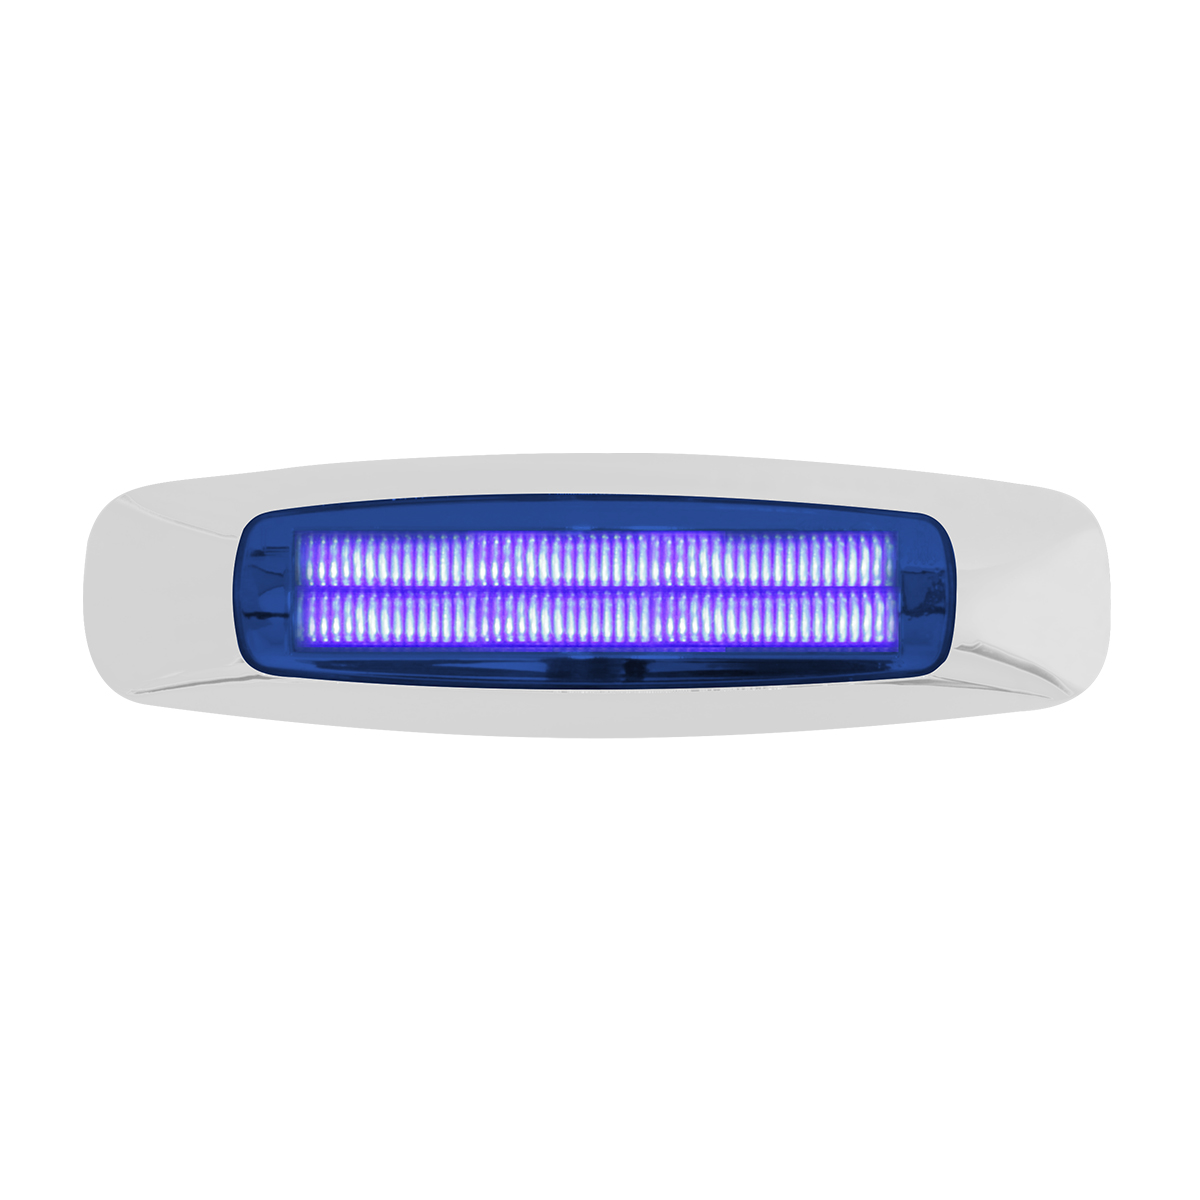 "74845 5-3/4"" Rectangular Prime LED Marker Light in Blue/Blue"